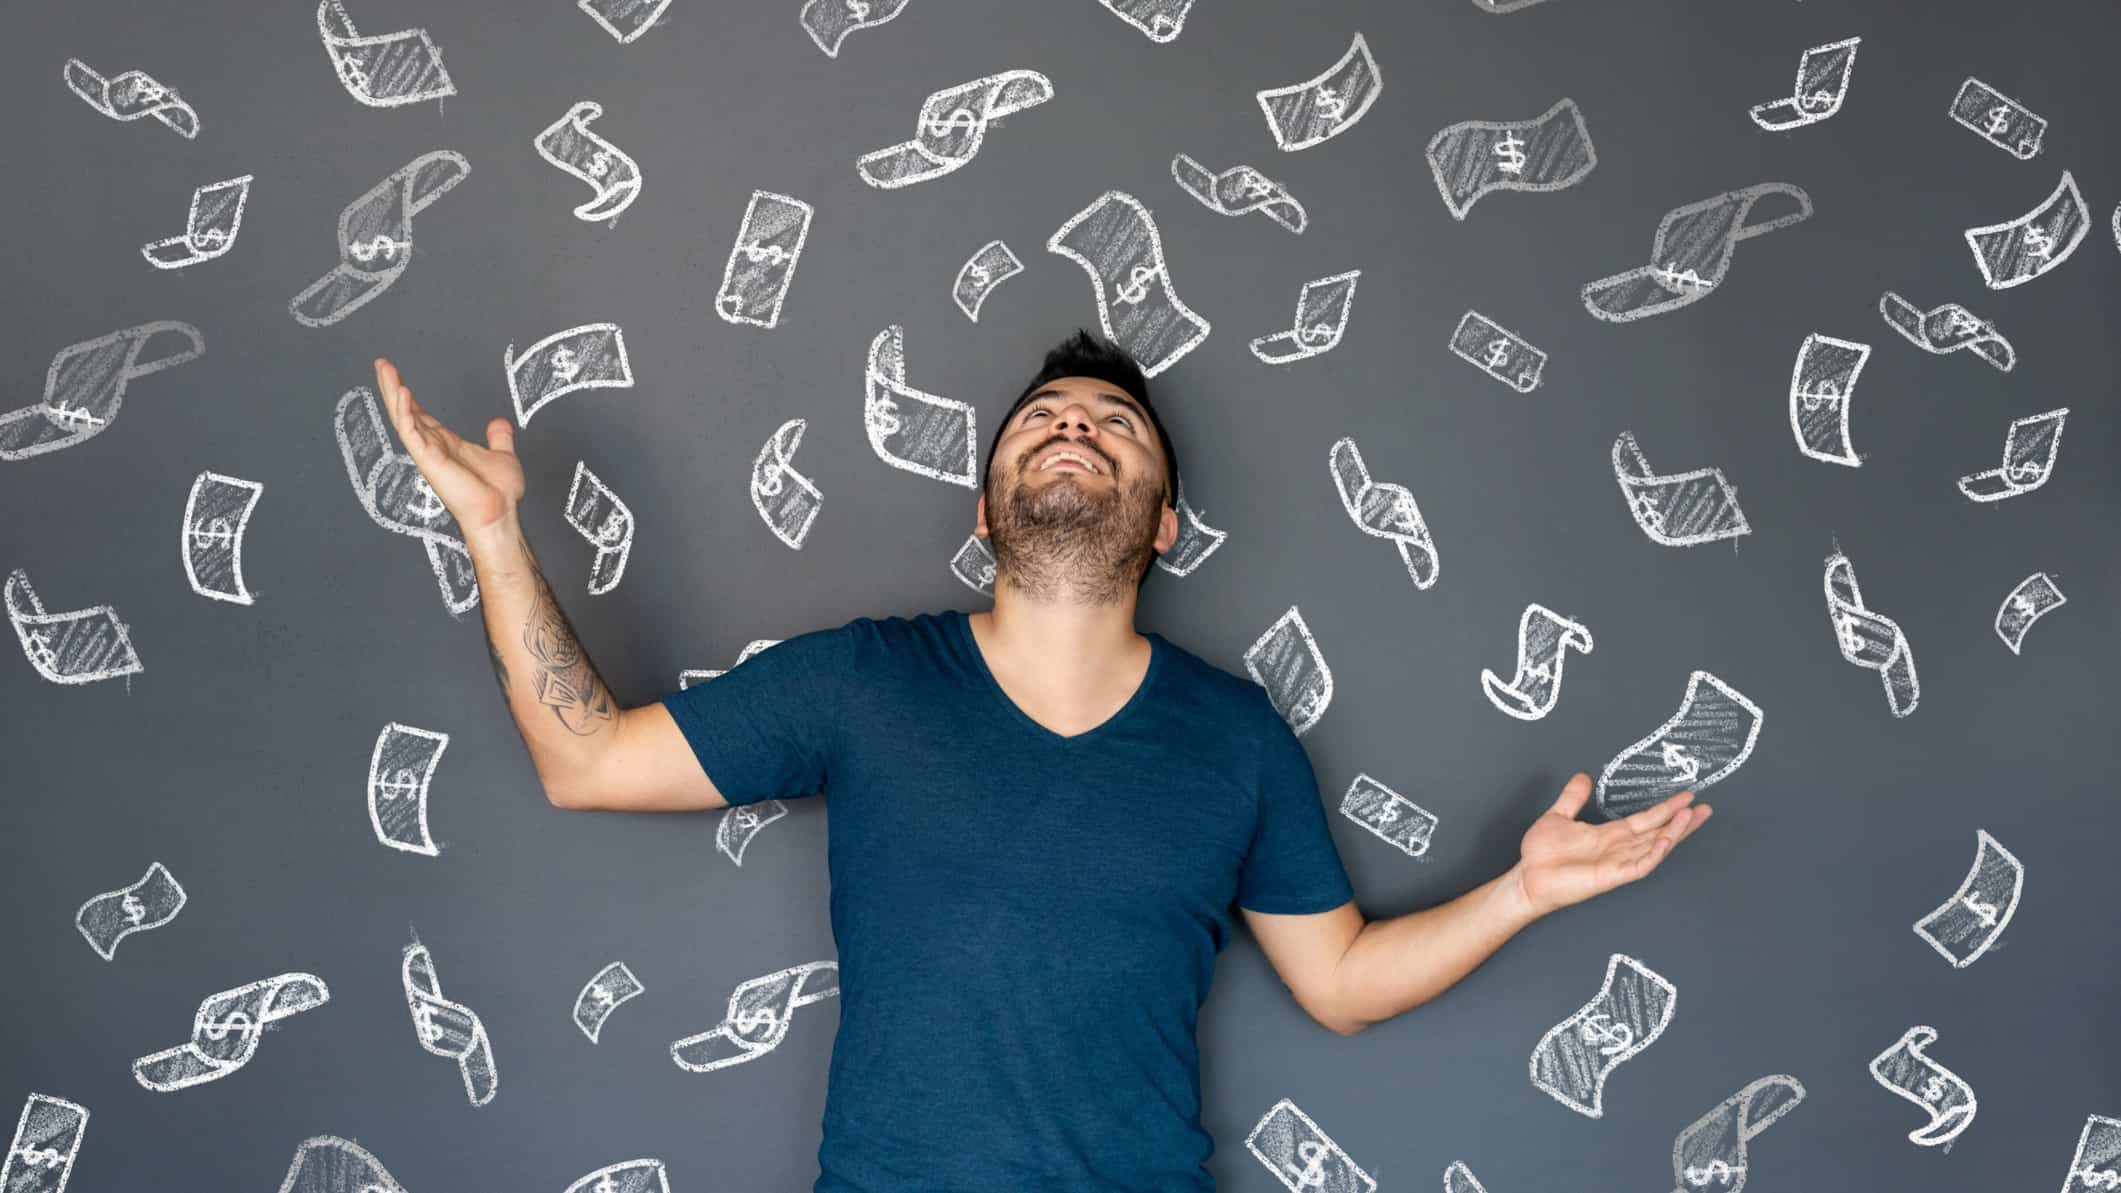 rising asx share price represented by man with arms raised against blackboard featuring images of dollar notes